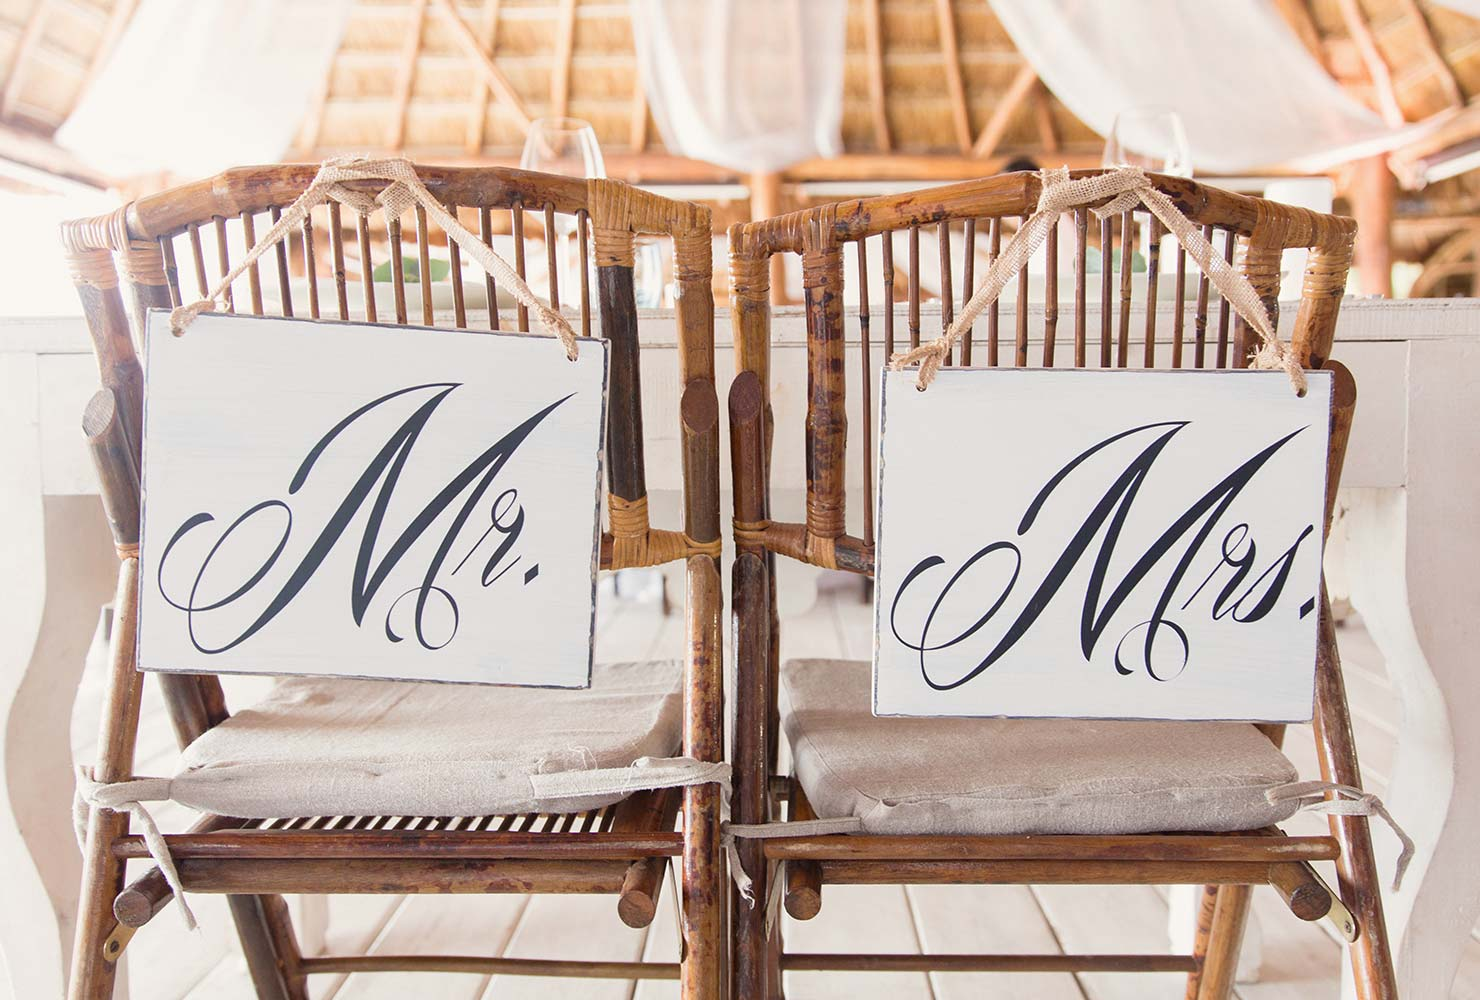 Mr. and Mrs wedding chairs